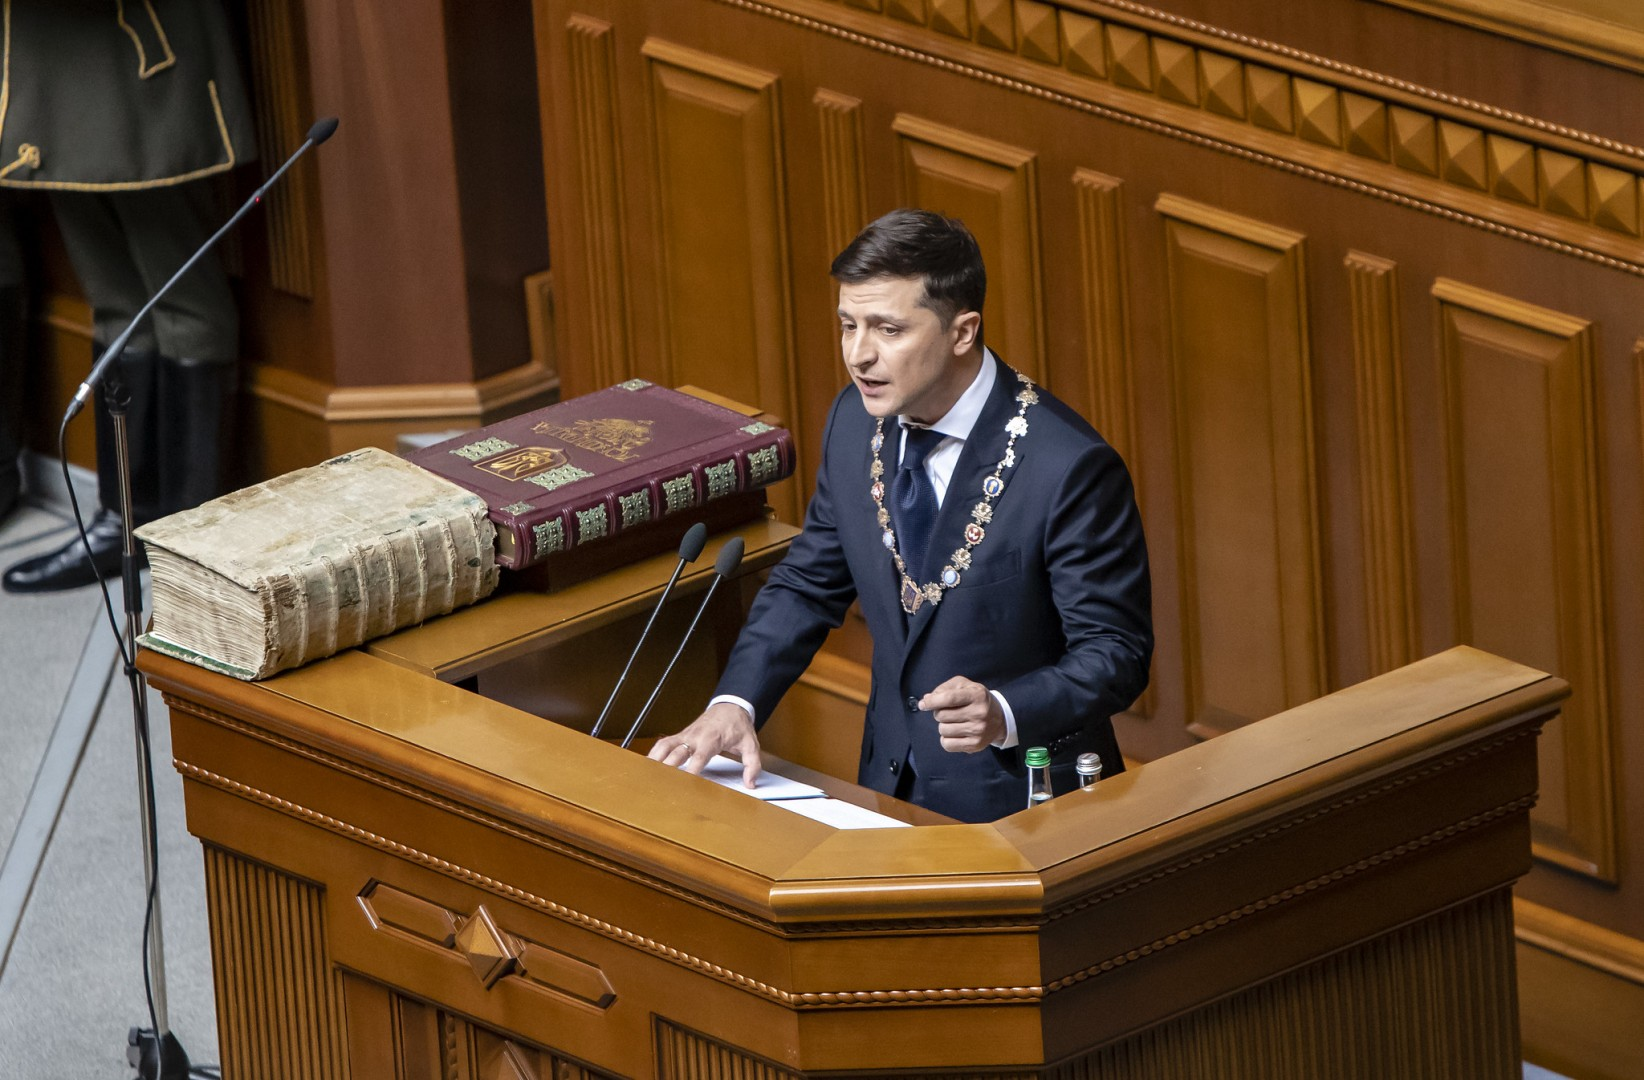 Volodymyr Zelensky was elected president at elections in April (Image credit: Flickr / U.S. Embassy Kyiv Ukraine)